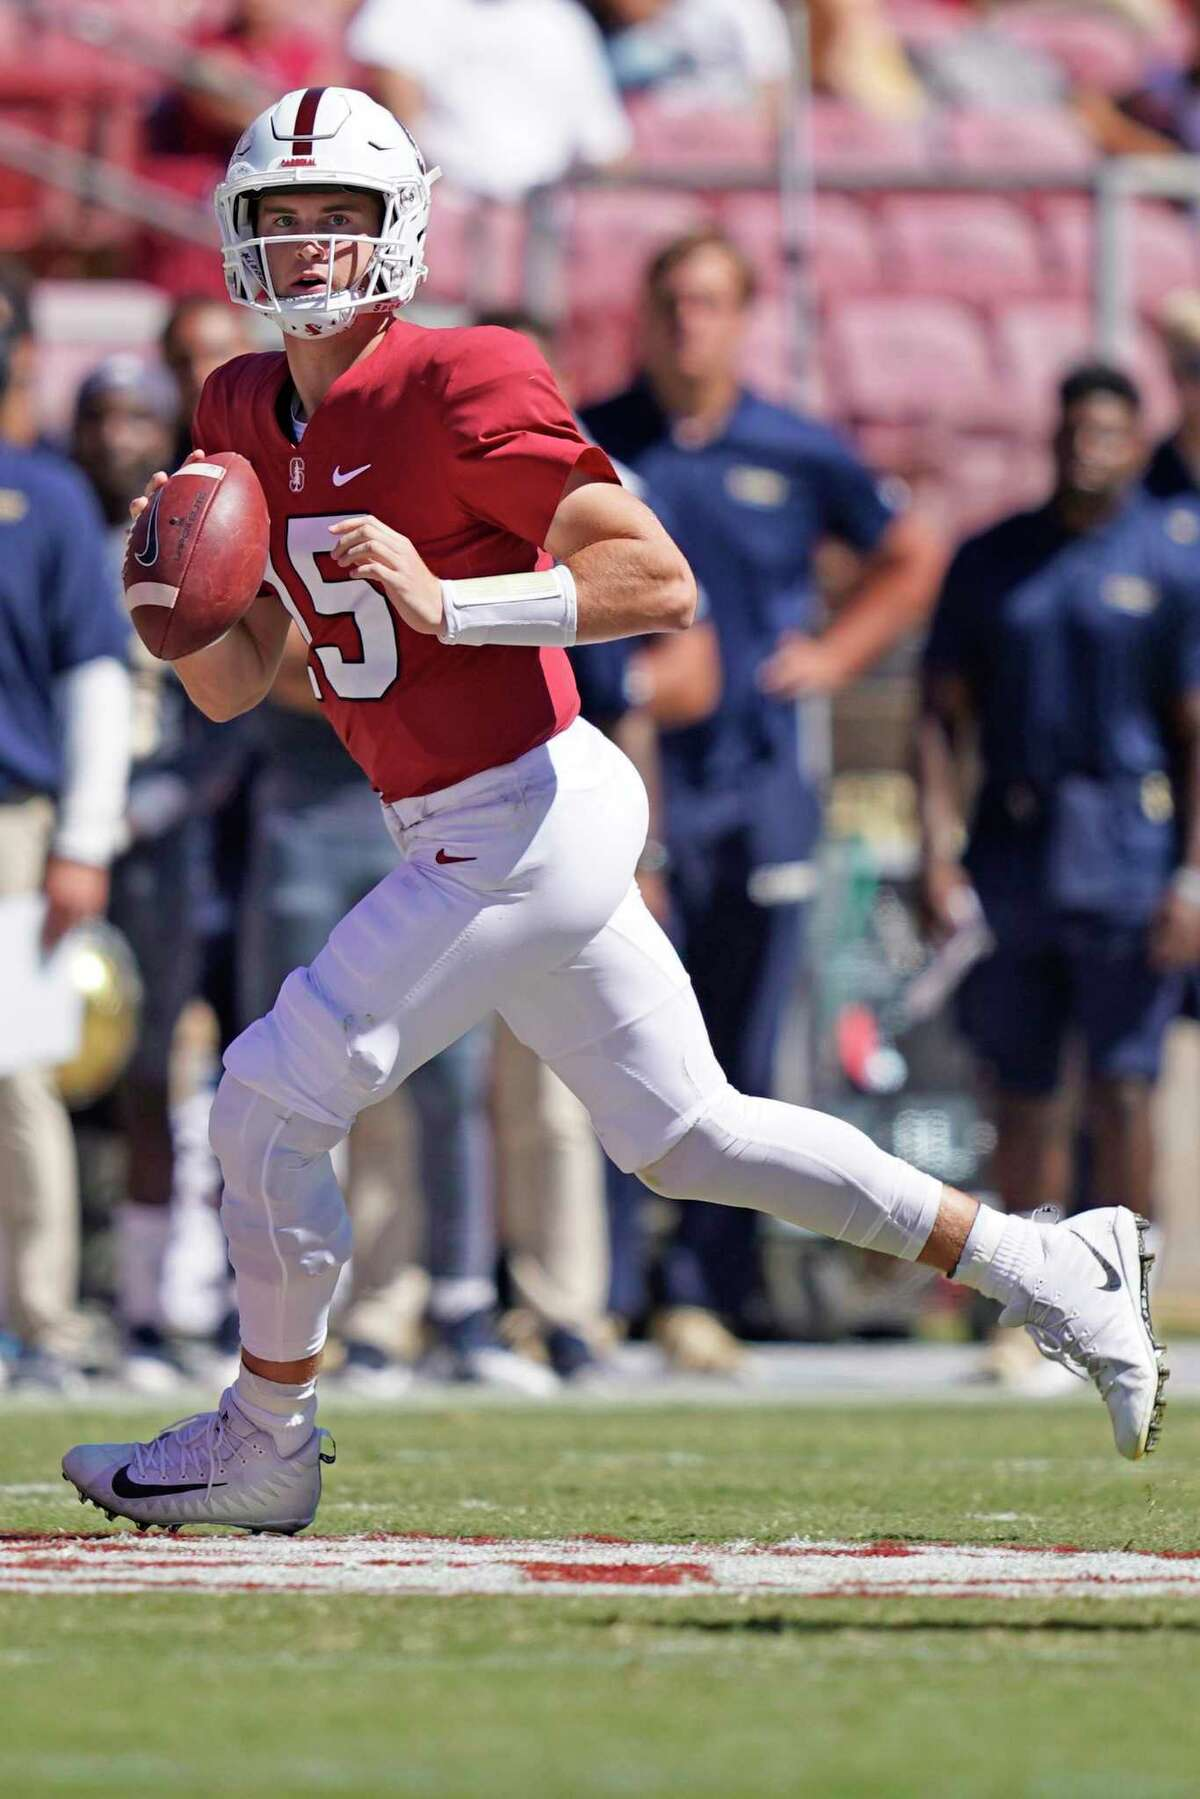 Stanford quarterback Davis Mills believed he was ready for the next level when he decided to enter the draft.